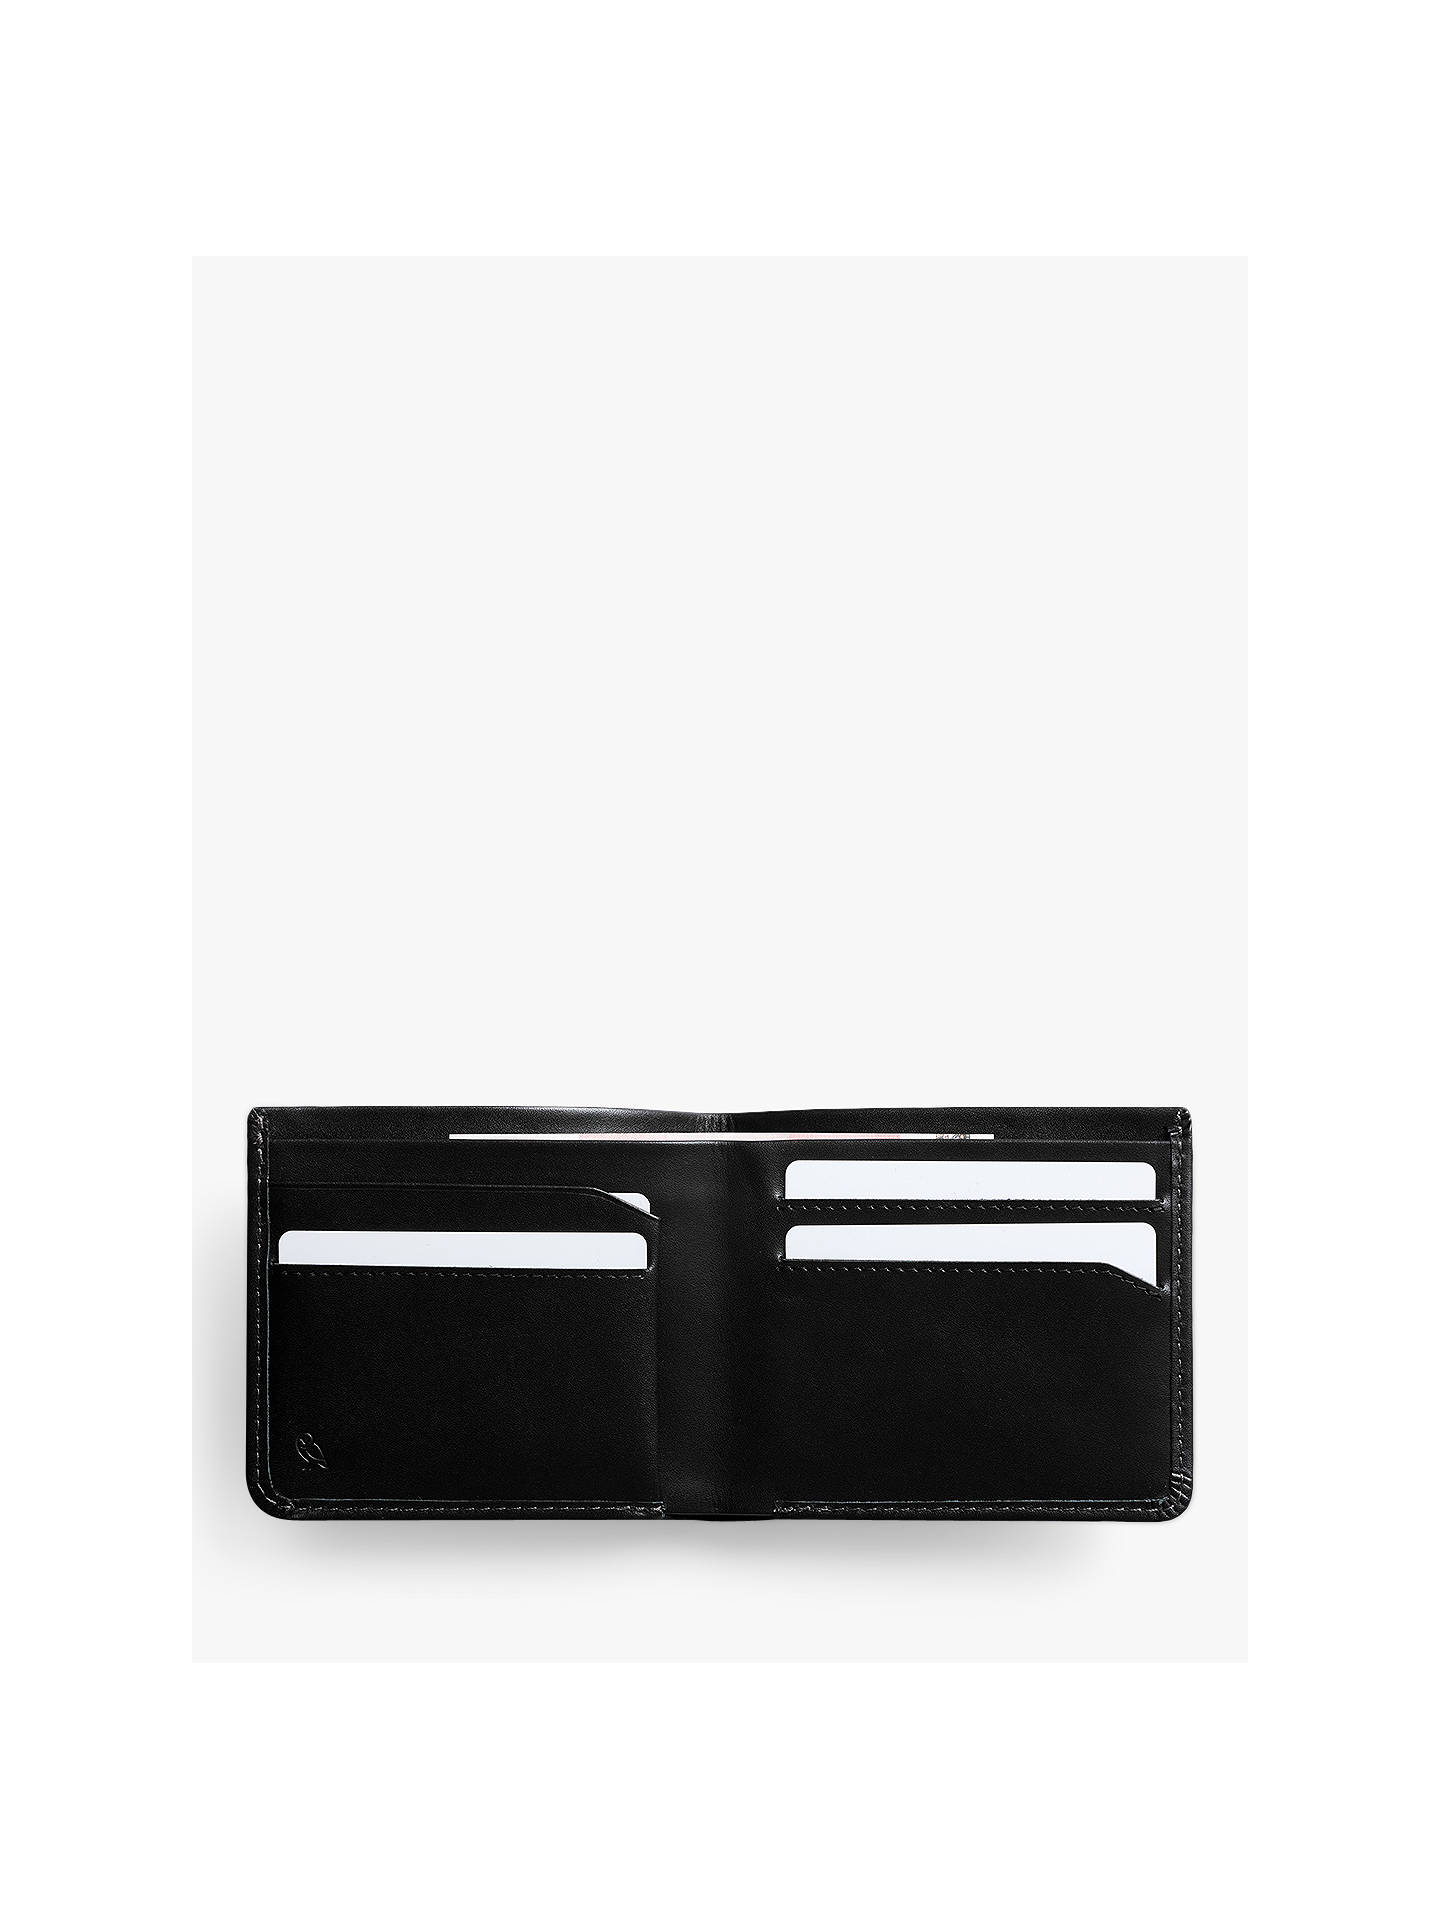 BuyBellroy Note Sleeve Leather Wallet, Black Online at johnlewis.com